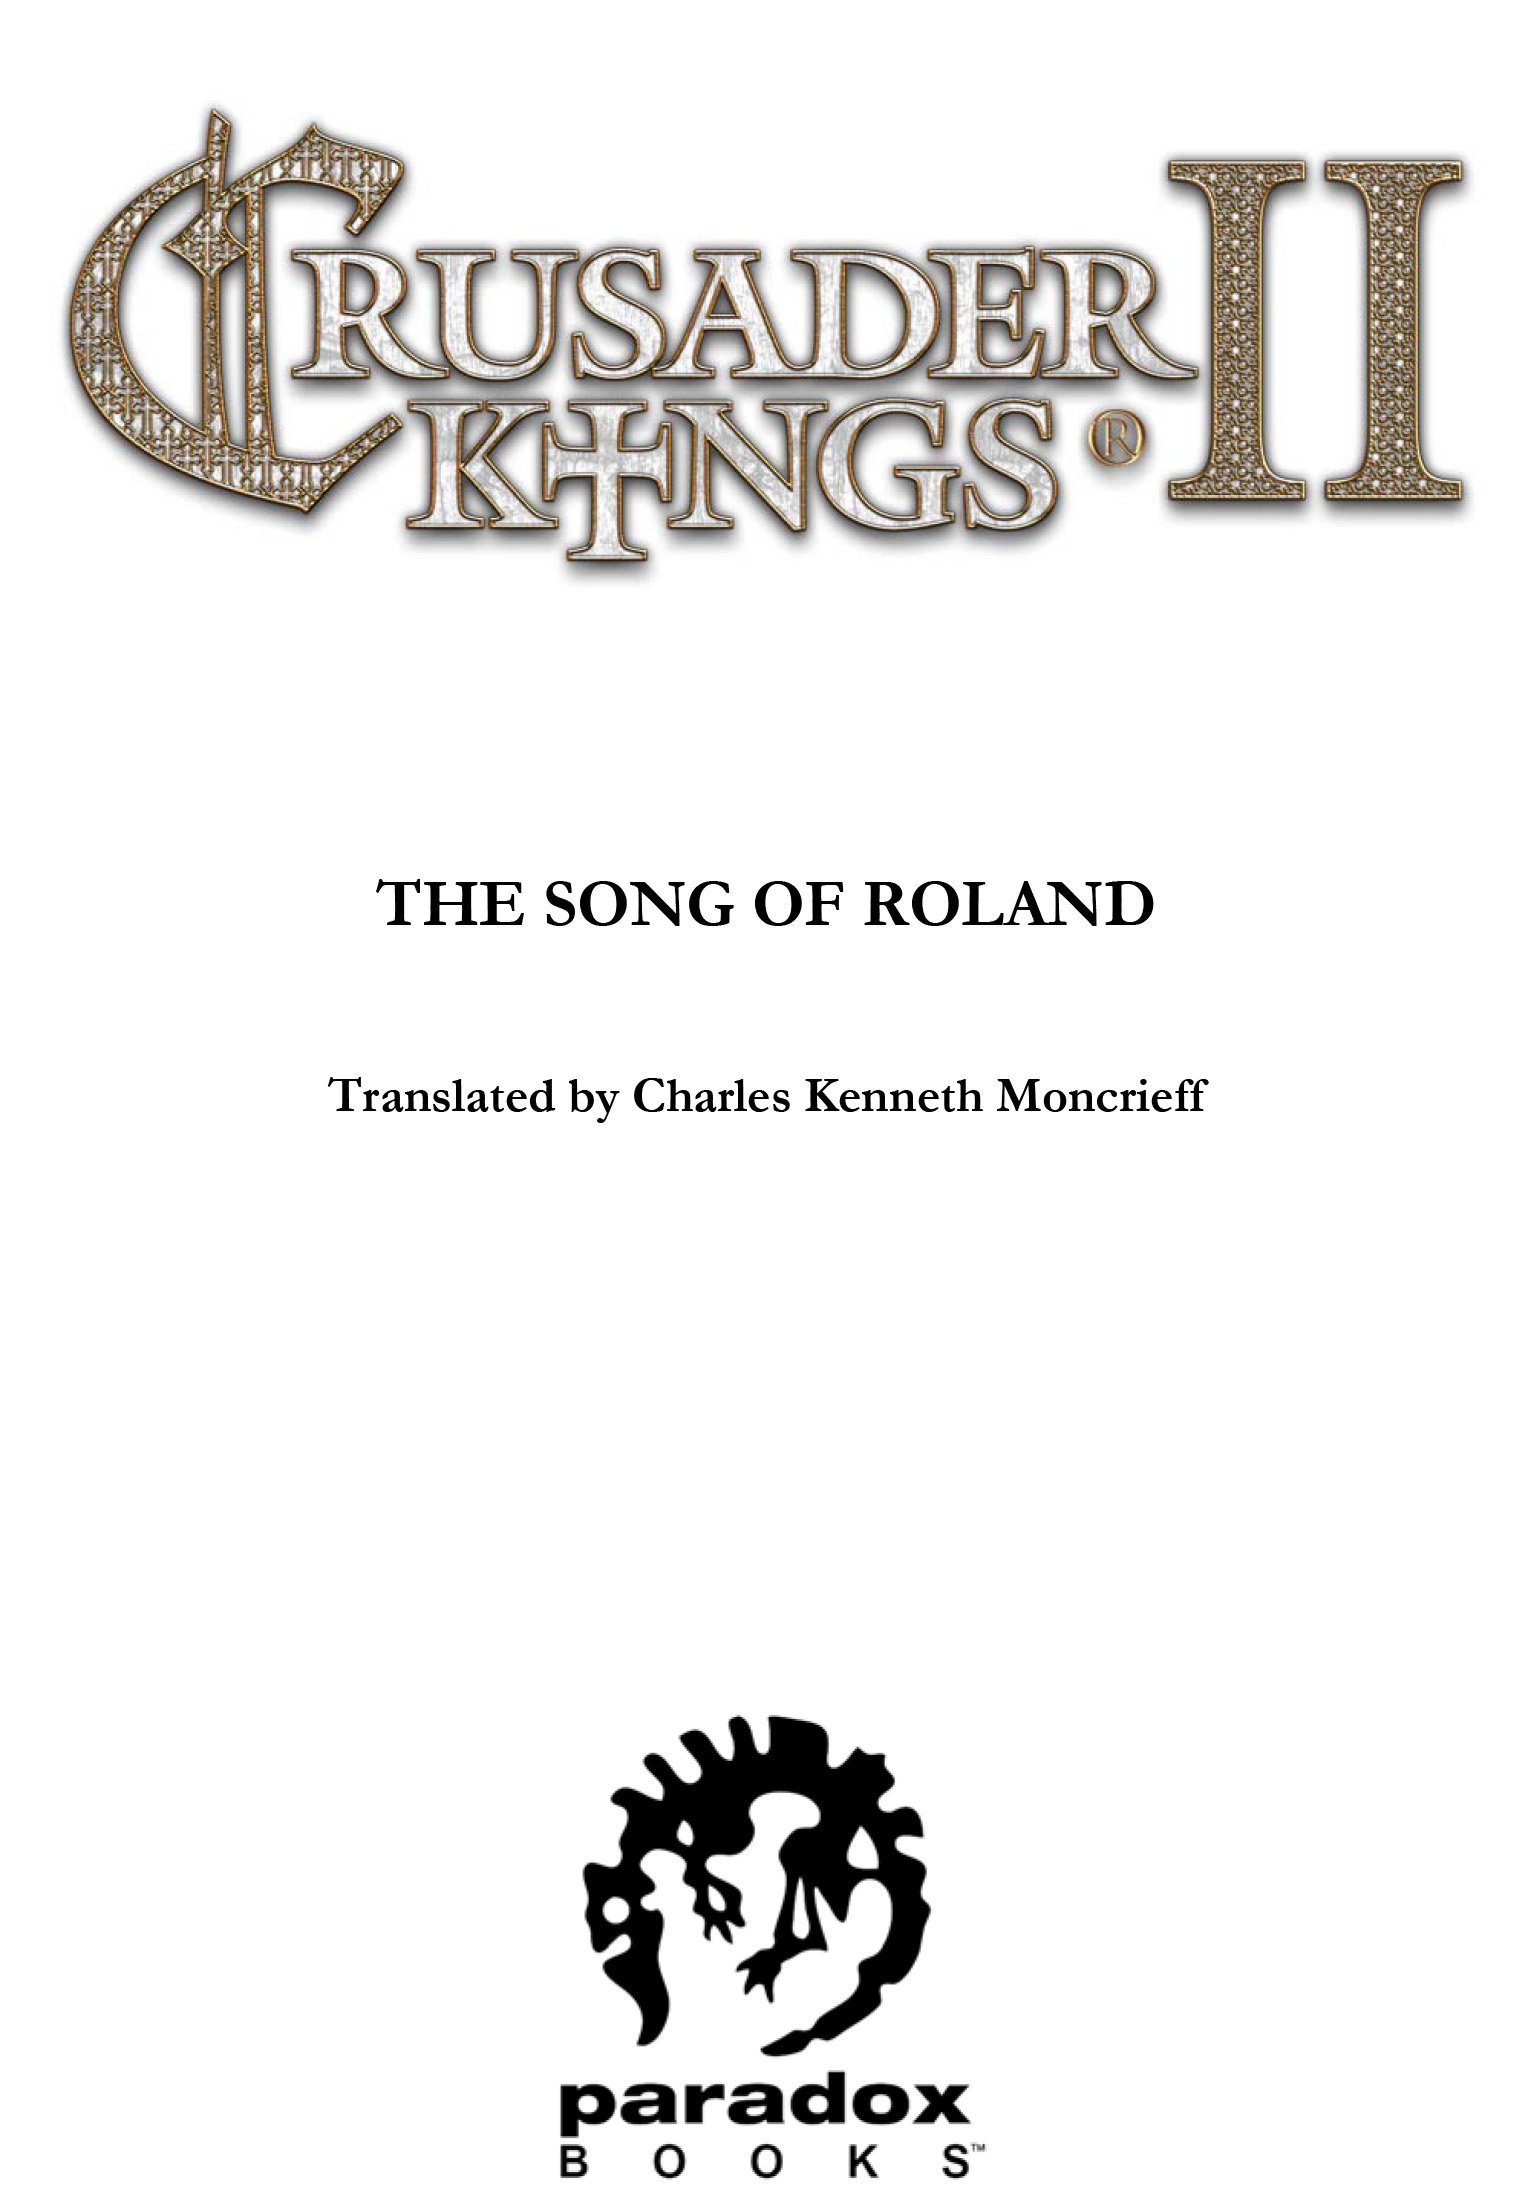 E-book - Crusader Kings II: The Song of Roland screenshot